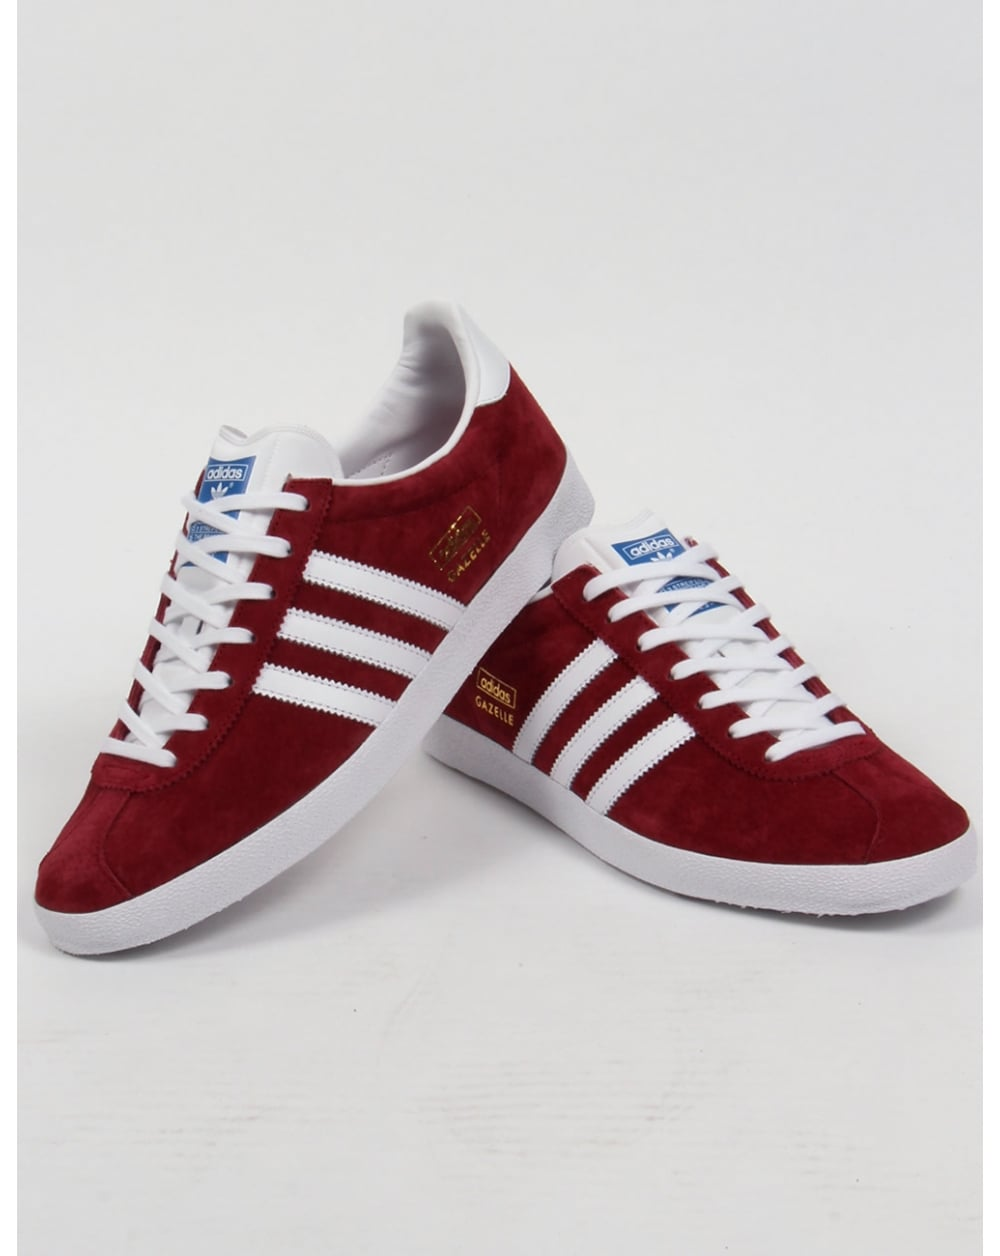 Adidas Gazelle Og Maroon White los granados apartment.co.uk